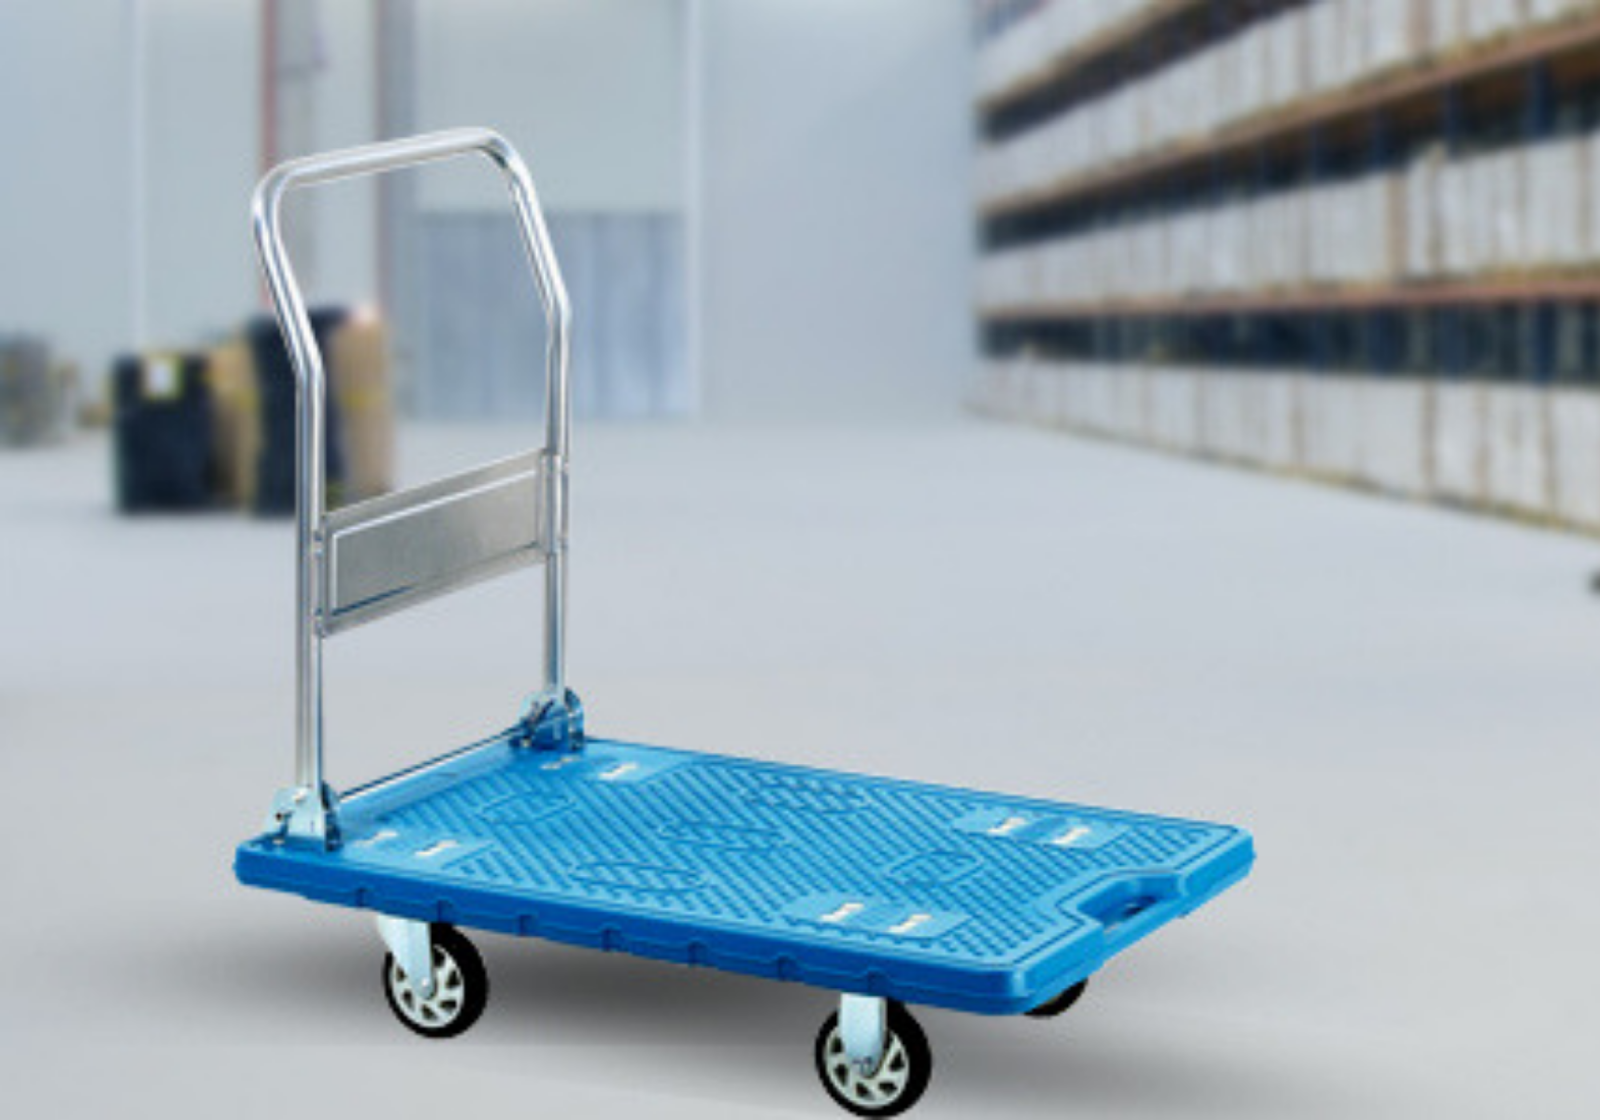 equal platform trolley